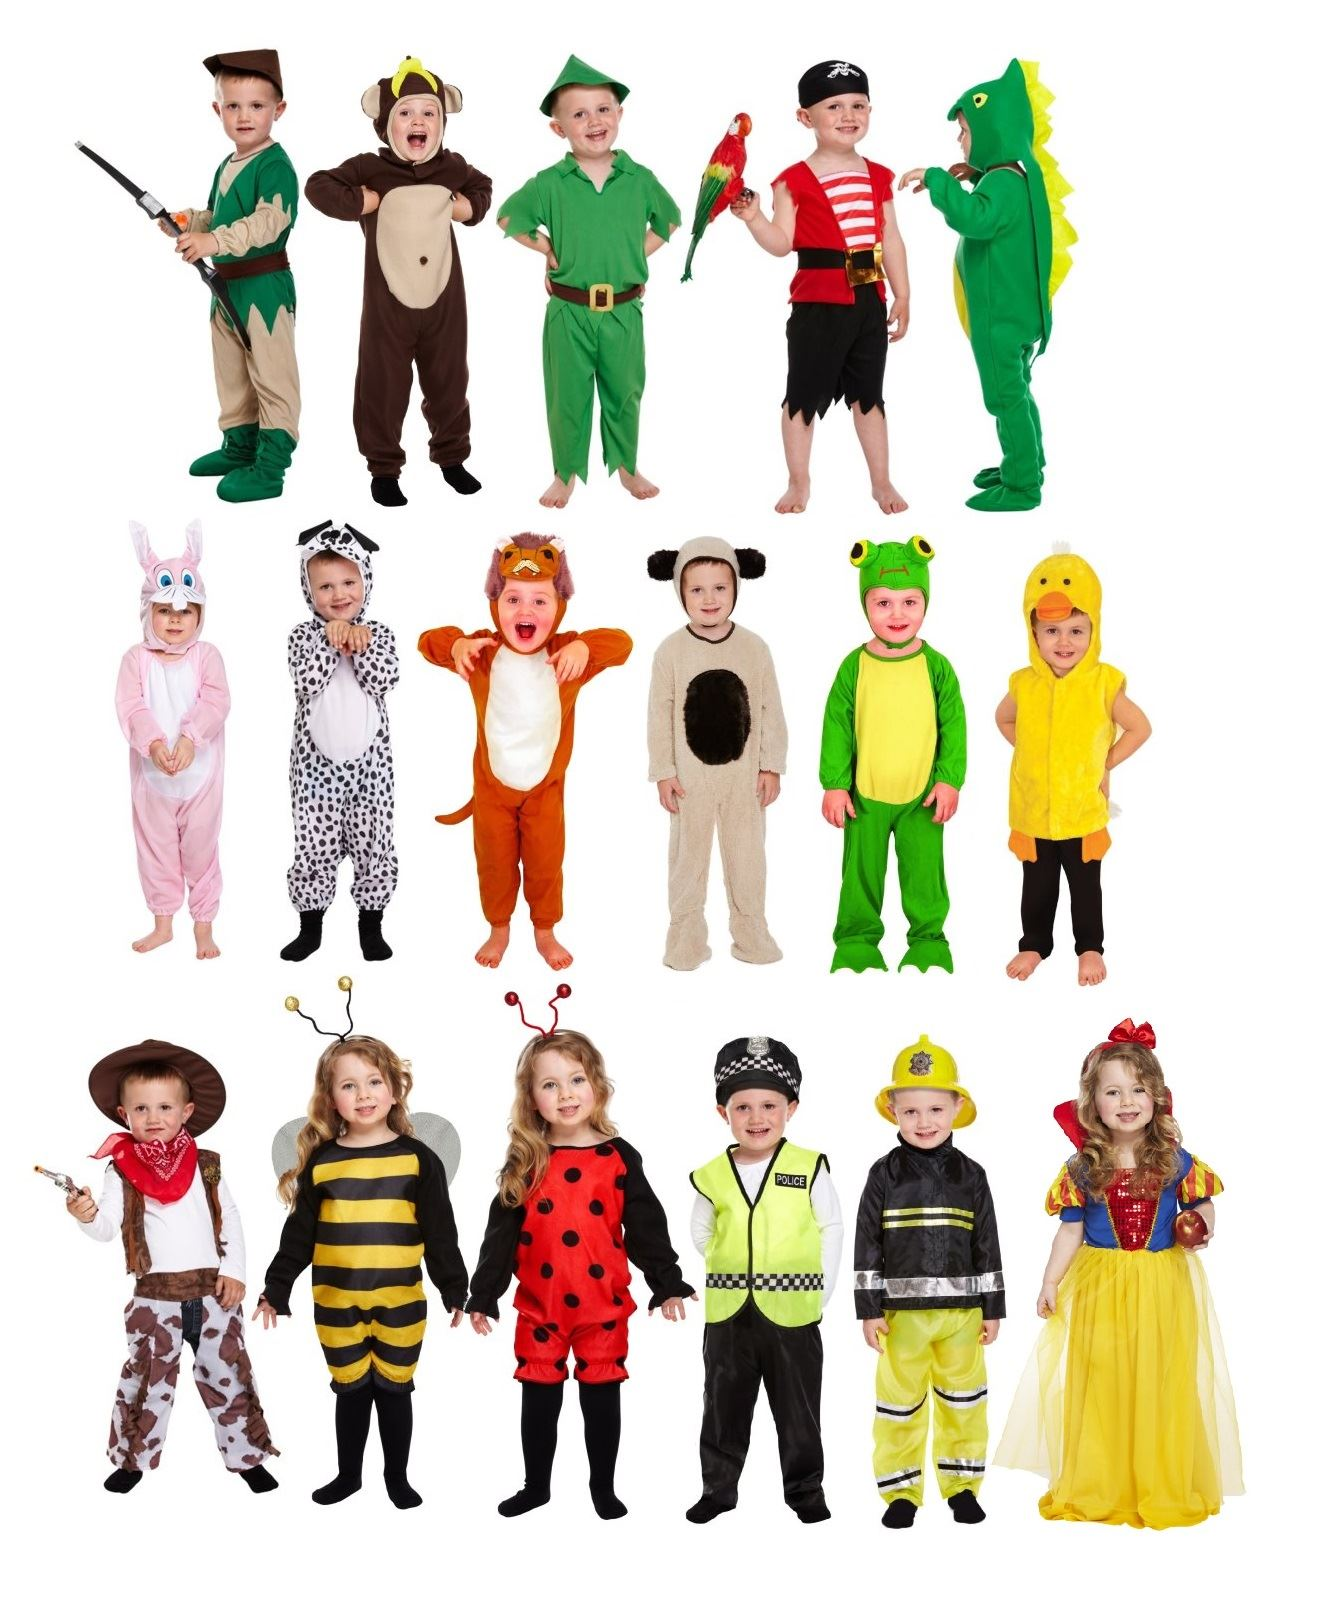 Details about Toddler Fancy Dress Outfit Girls Boys Costume Book Week.